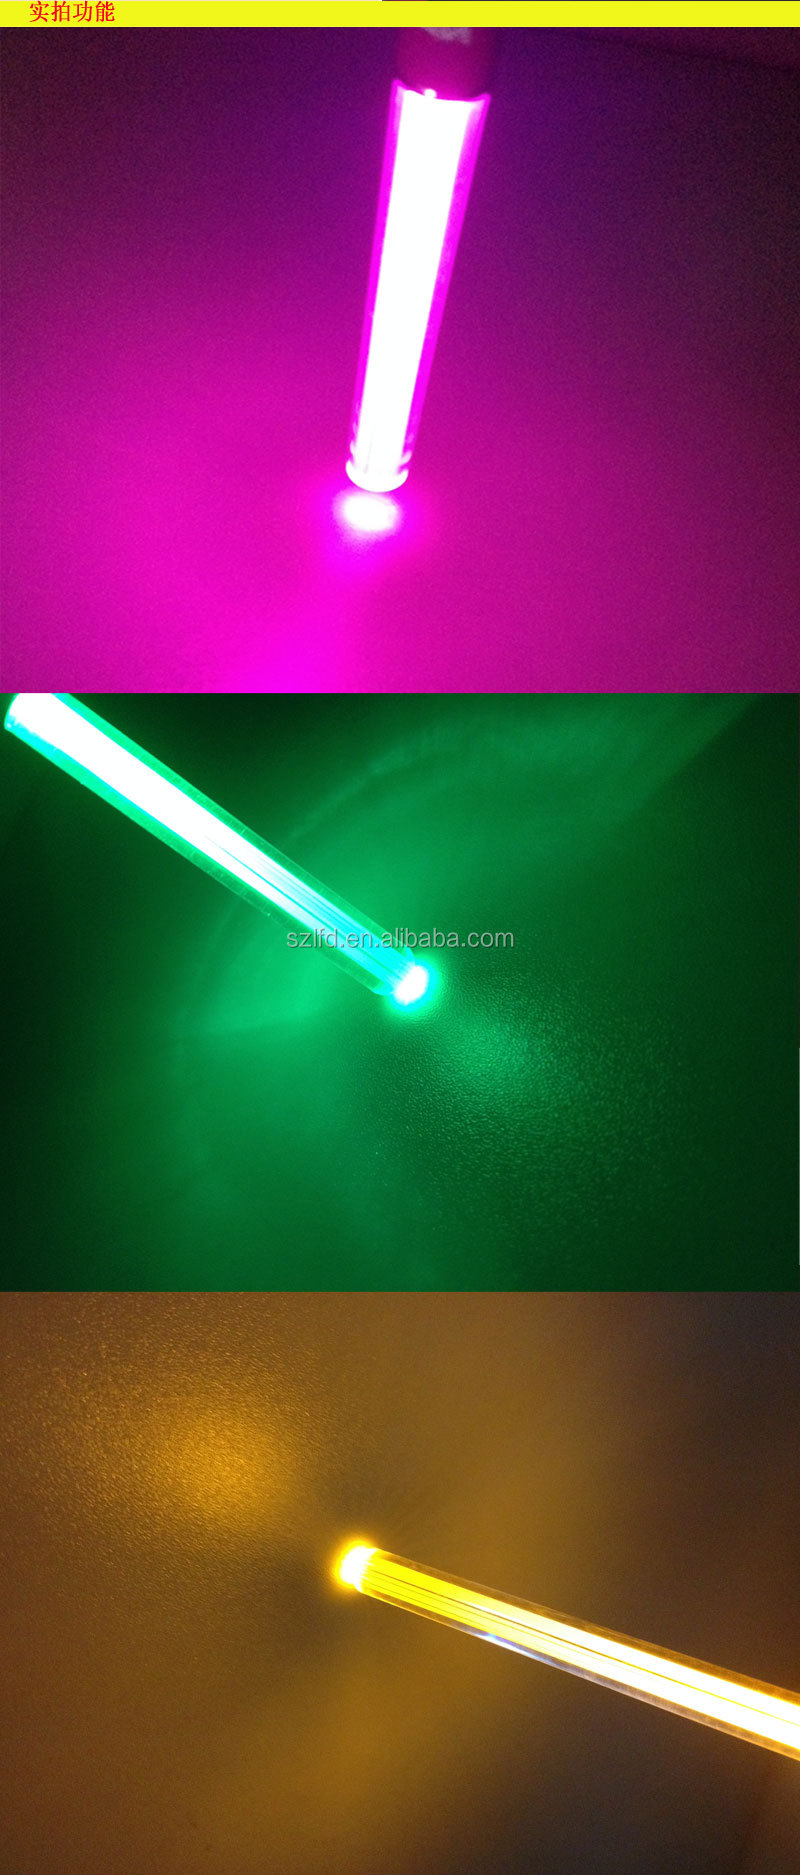 safety bulk industrial guides quotations grade get yellow sticks glow find military light wholesale ultra cheap shopping bright